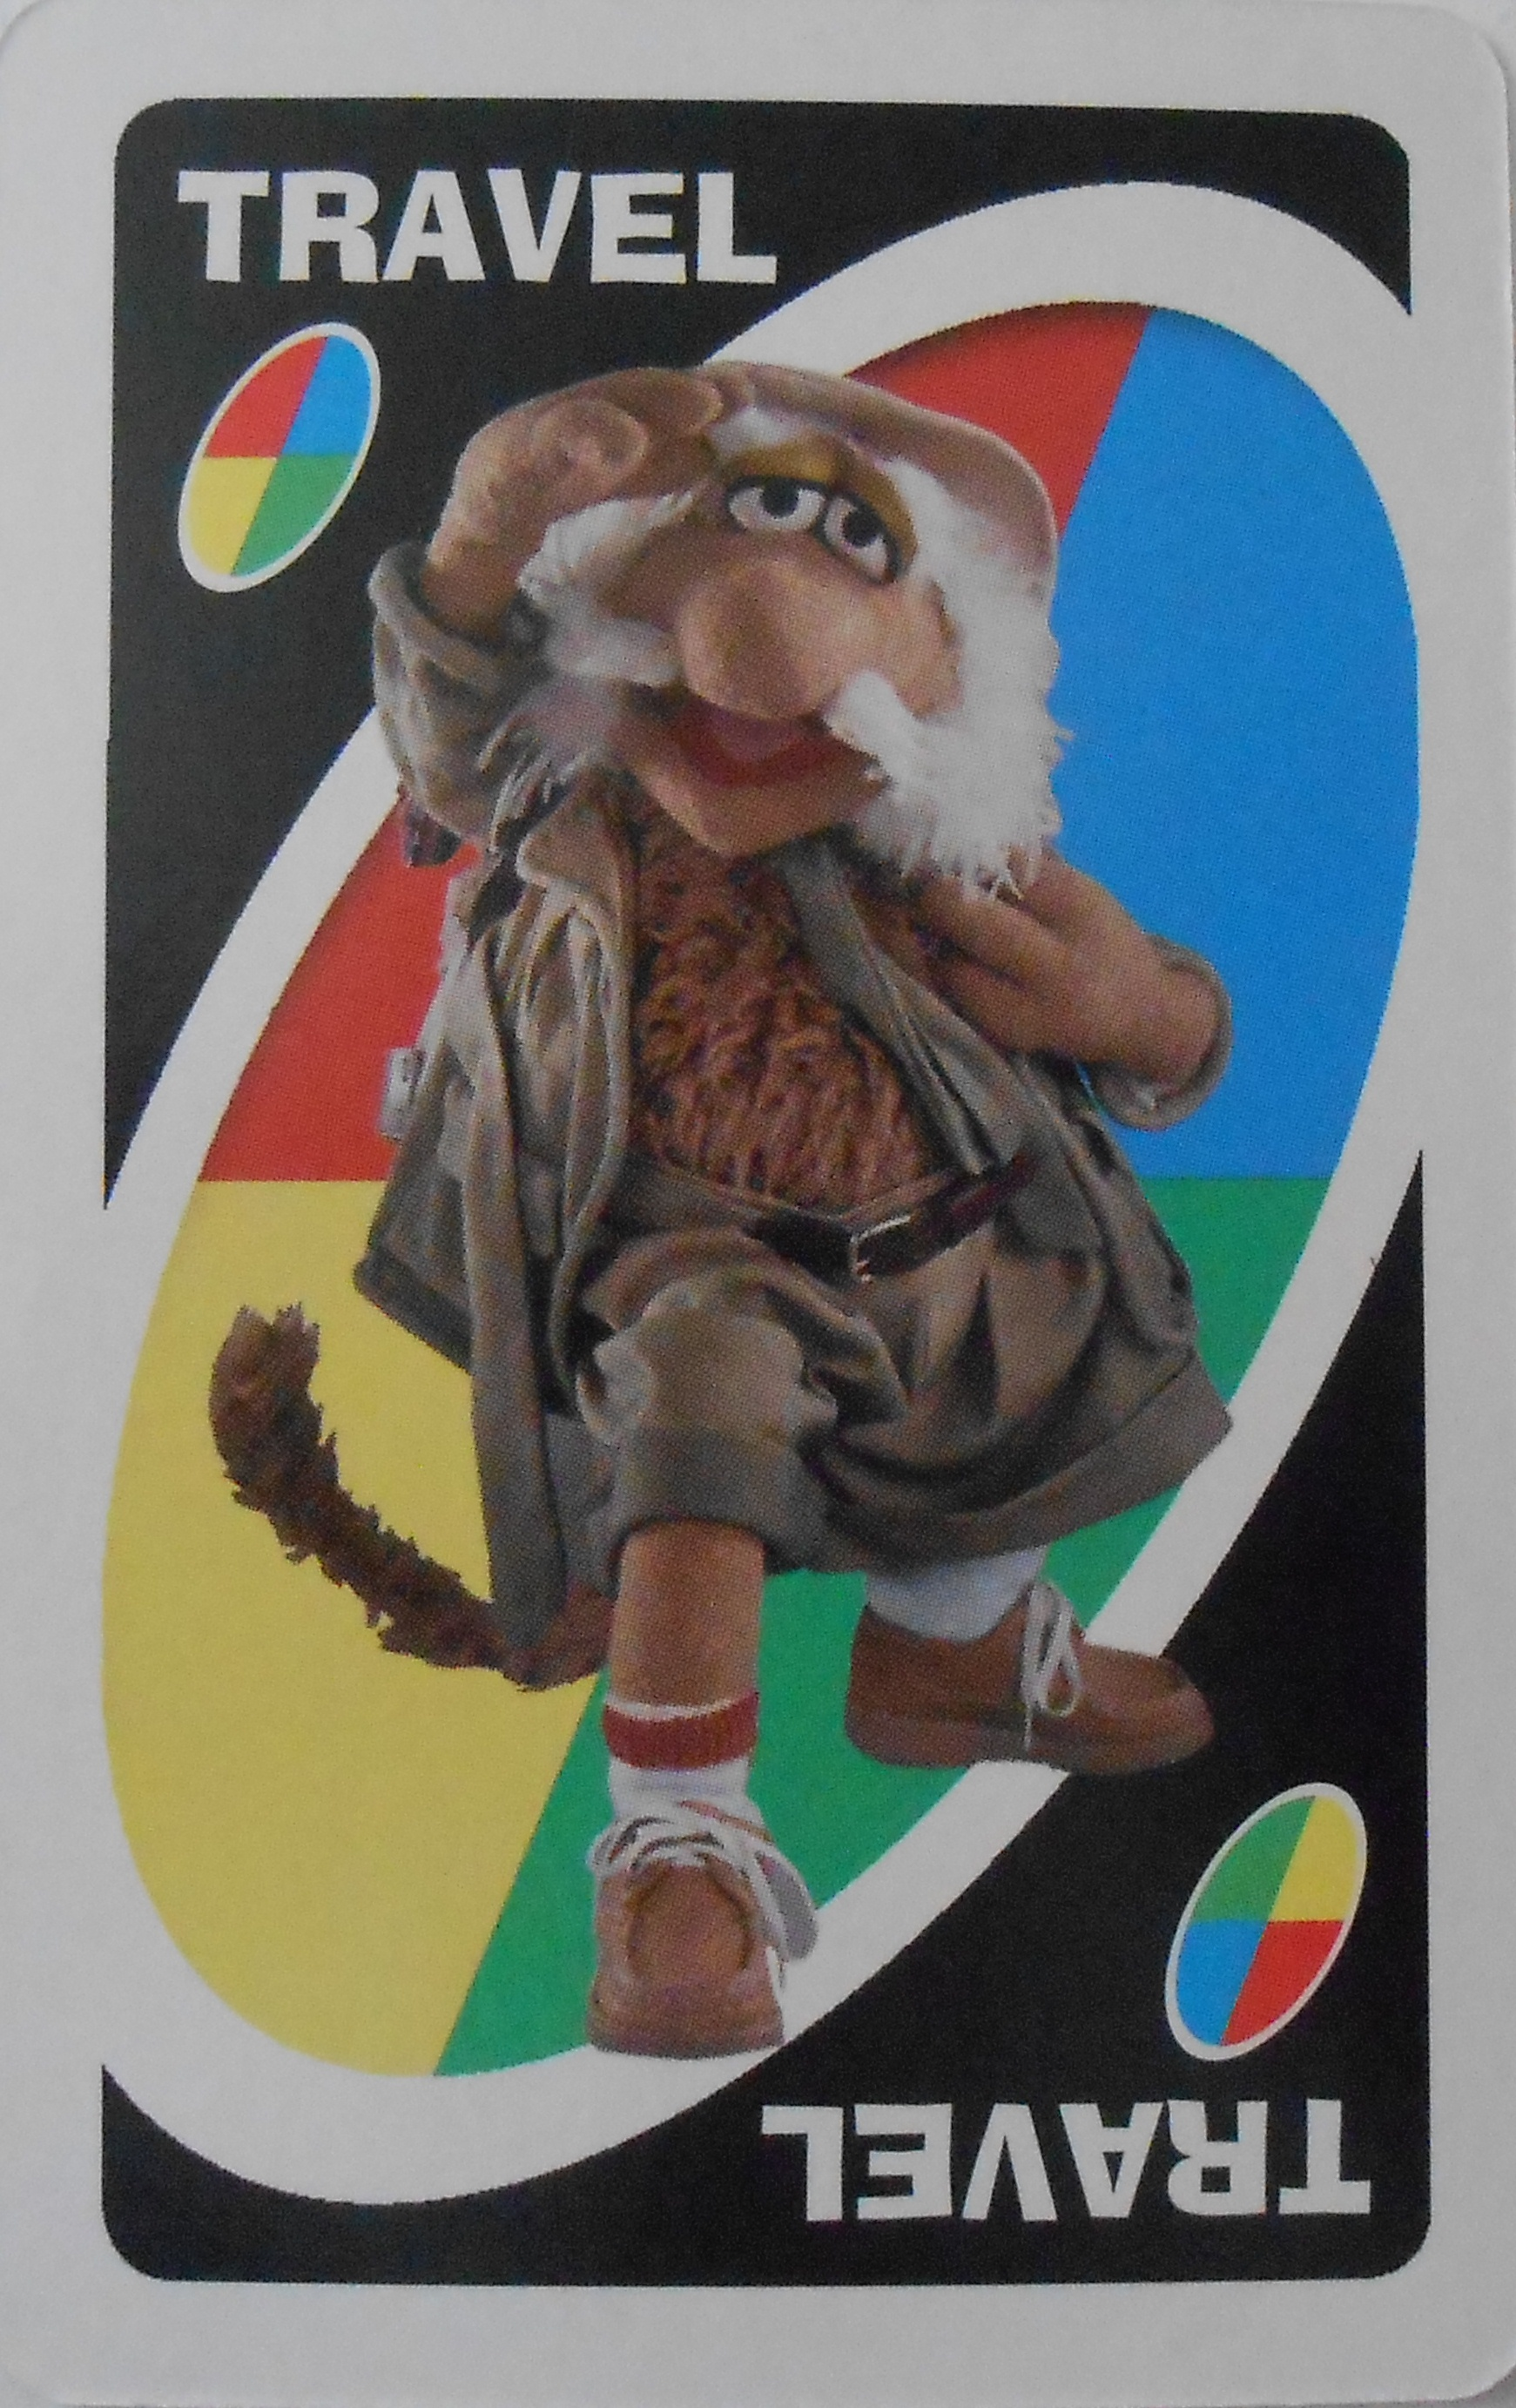 Fraggle Rock Uno (Travel Card)